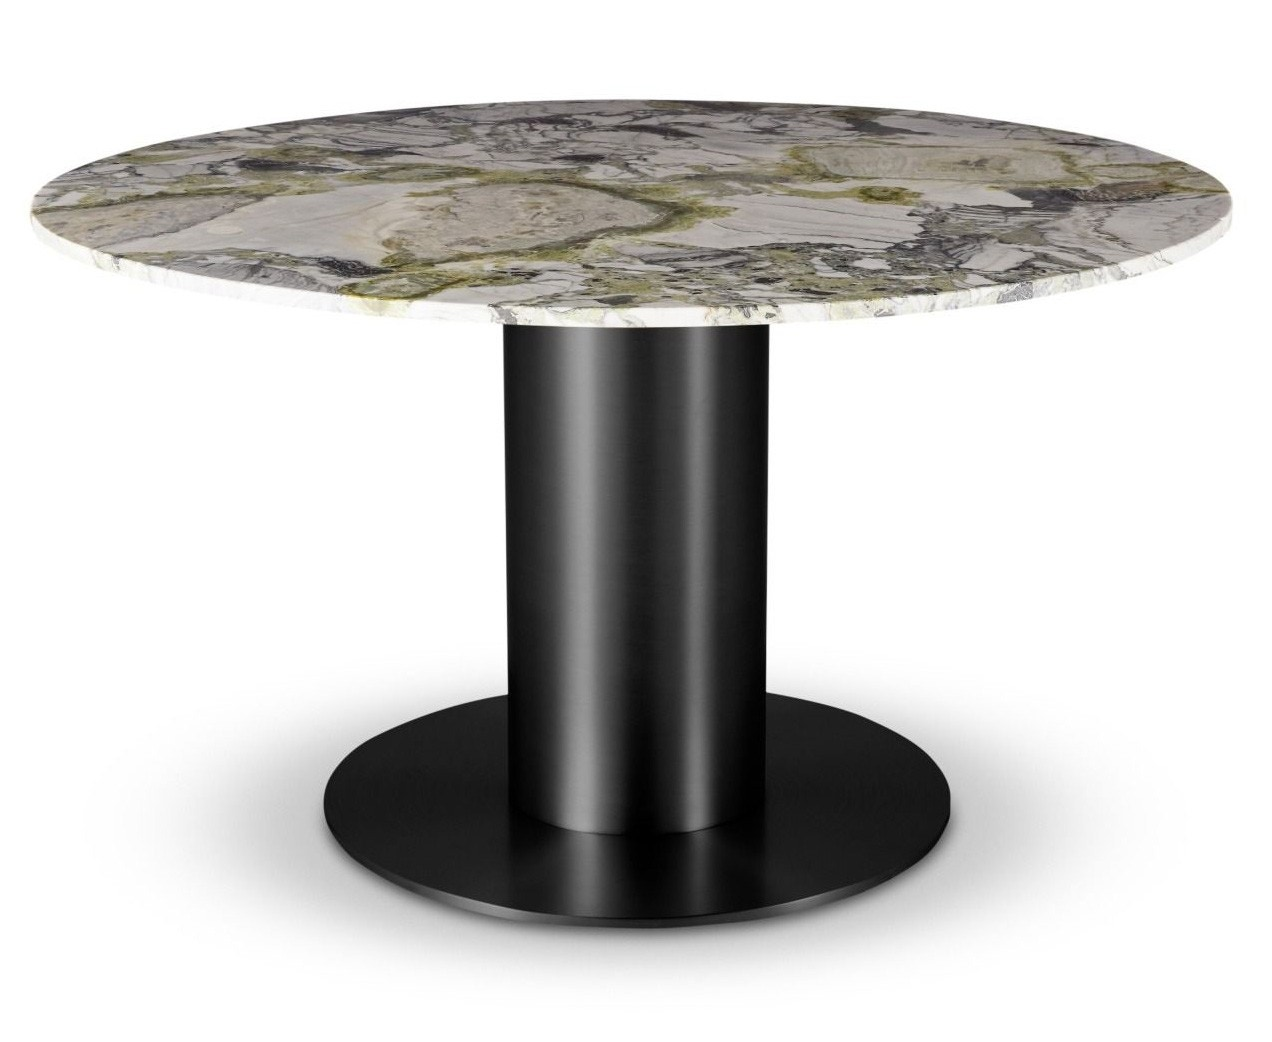 Tom Dixon Tube Primavera Table